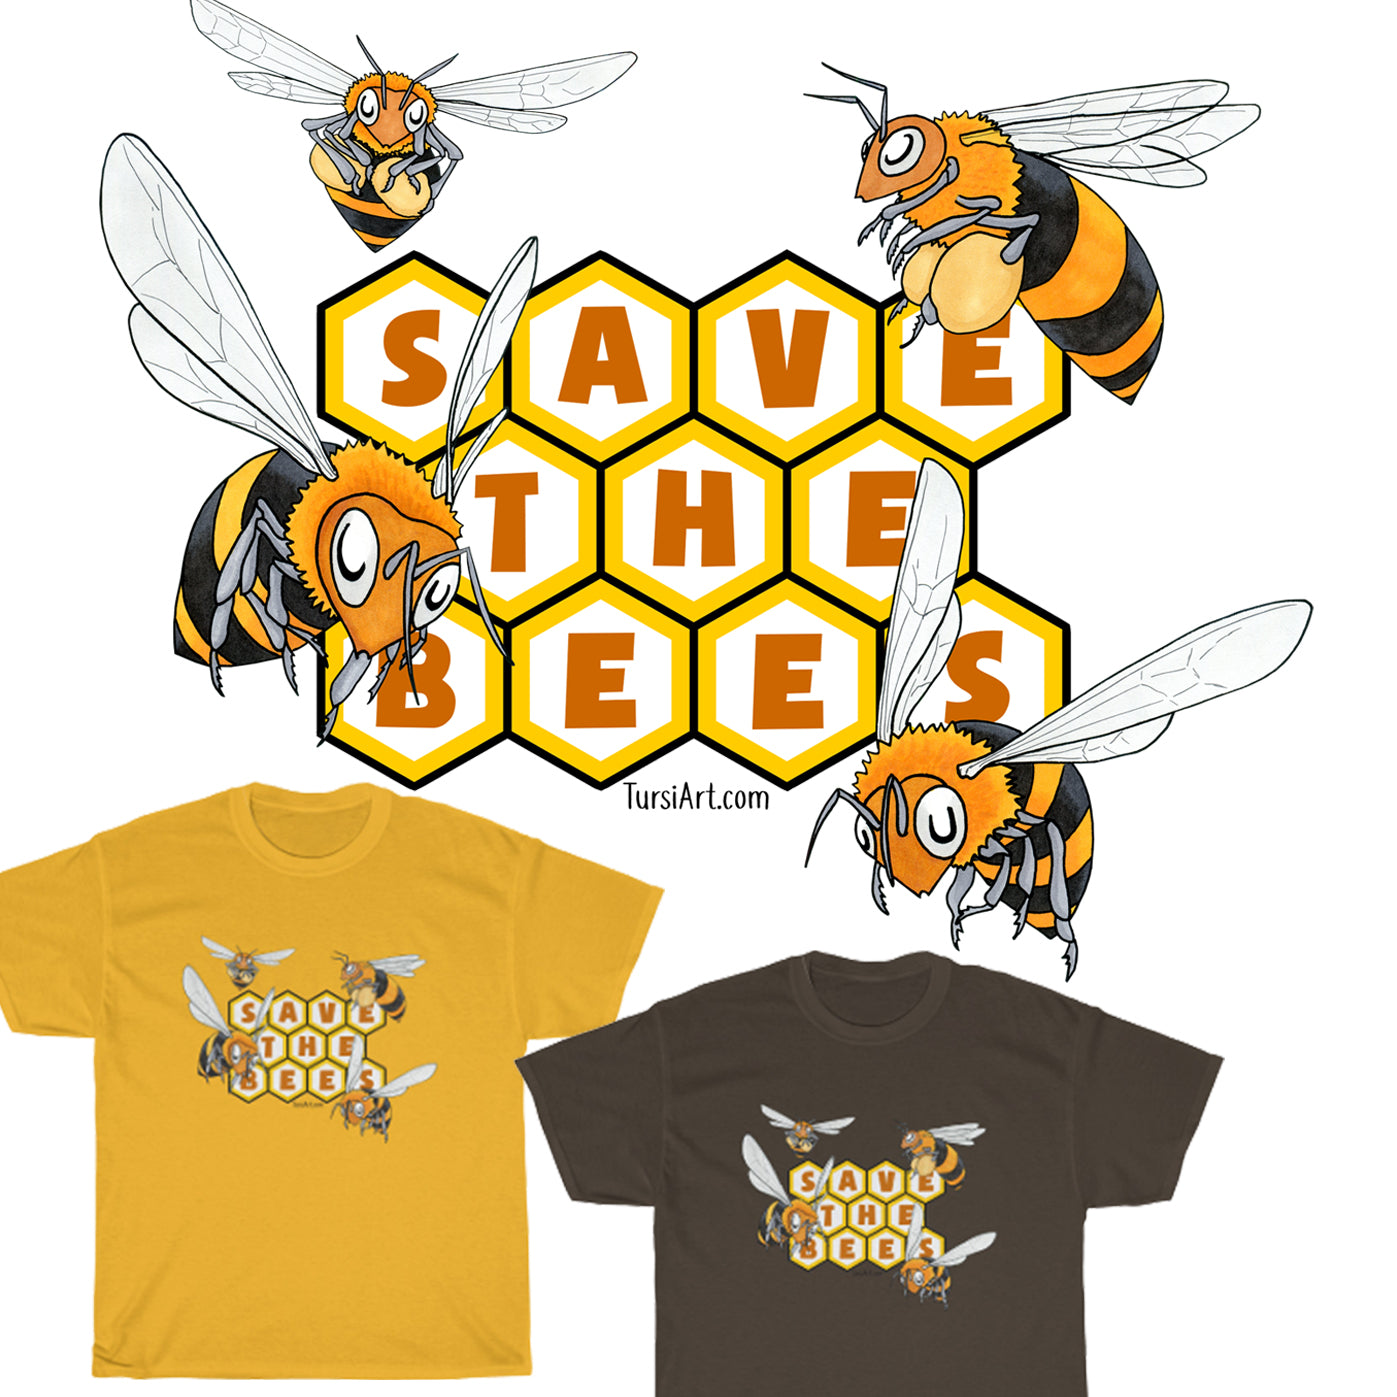 Save the Bees Unisex Cotton Tee in Gold or Chocolate Brown